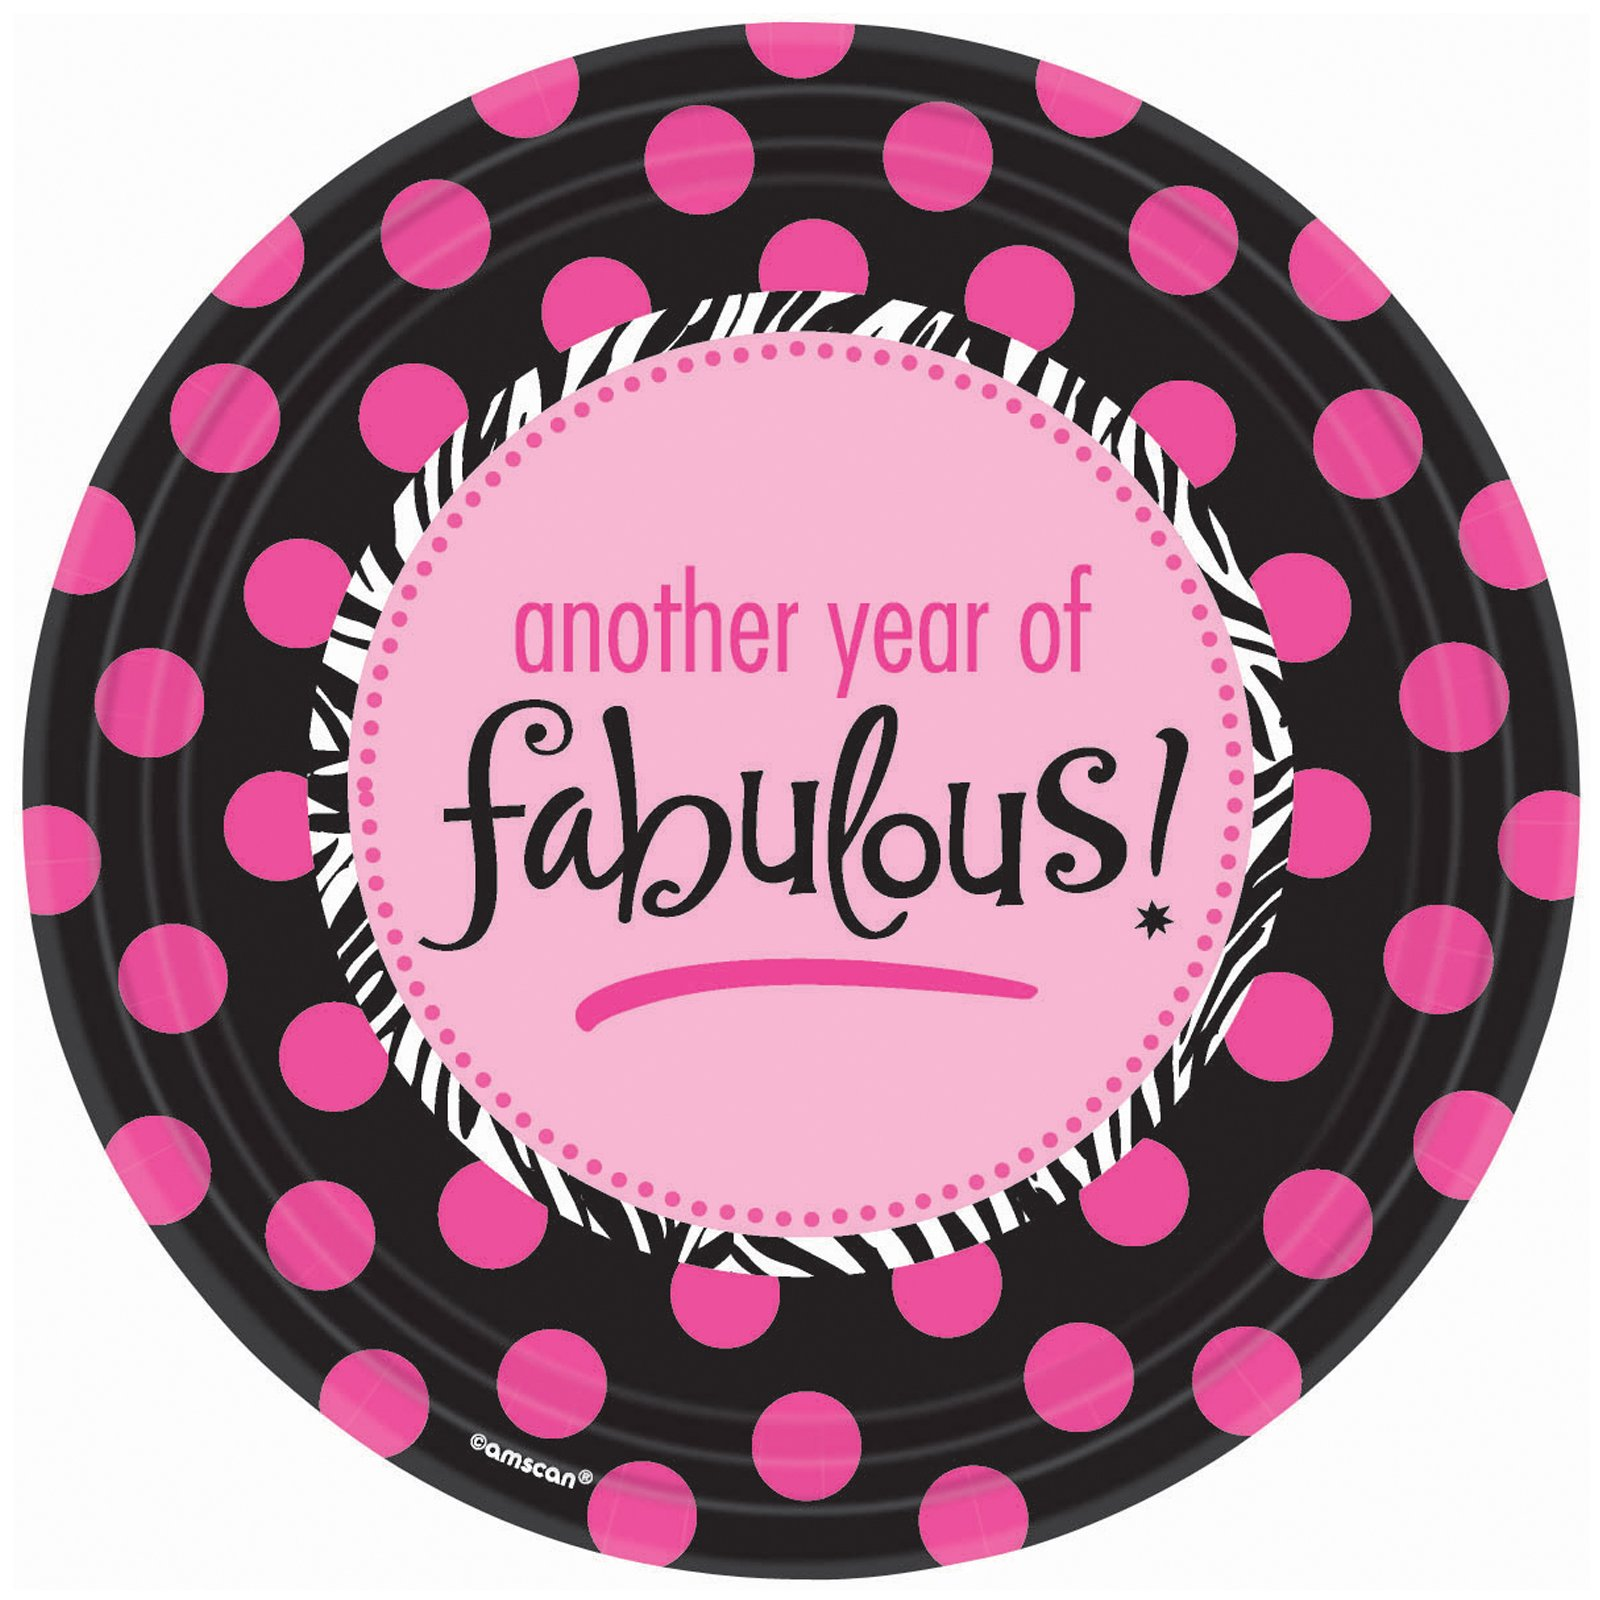 Another Year of Fabulous Dinner Plates (8 count)